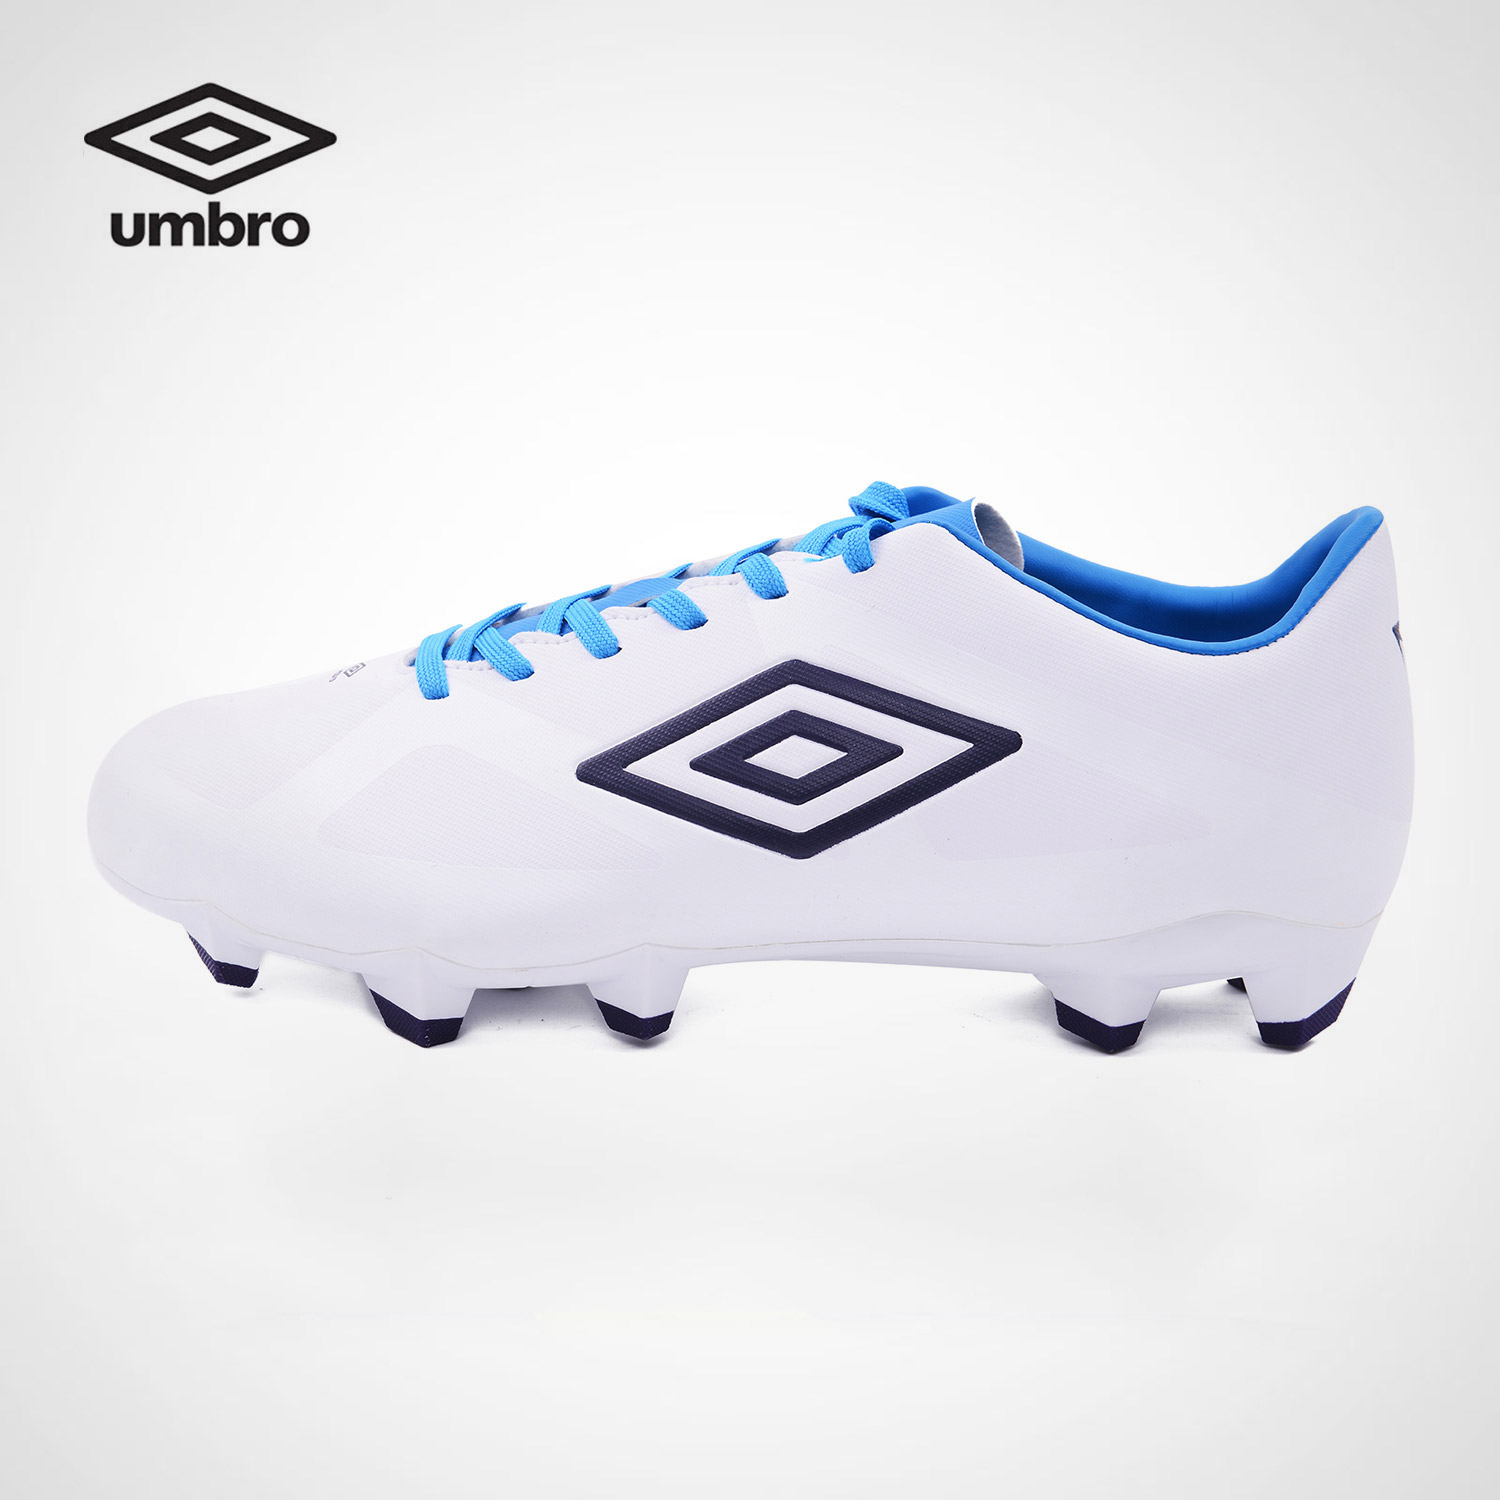 Umbro Football Shoes Men New Rubber Soles Anti Slip Adult Students Professional Training Sneakers Sports Shoes